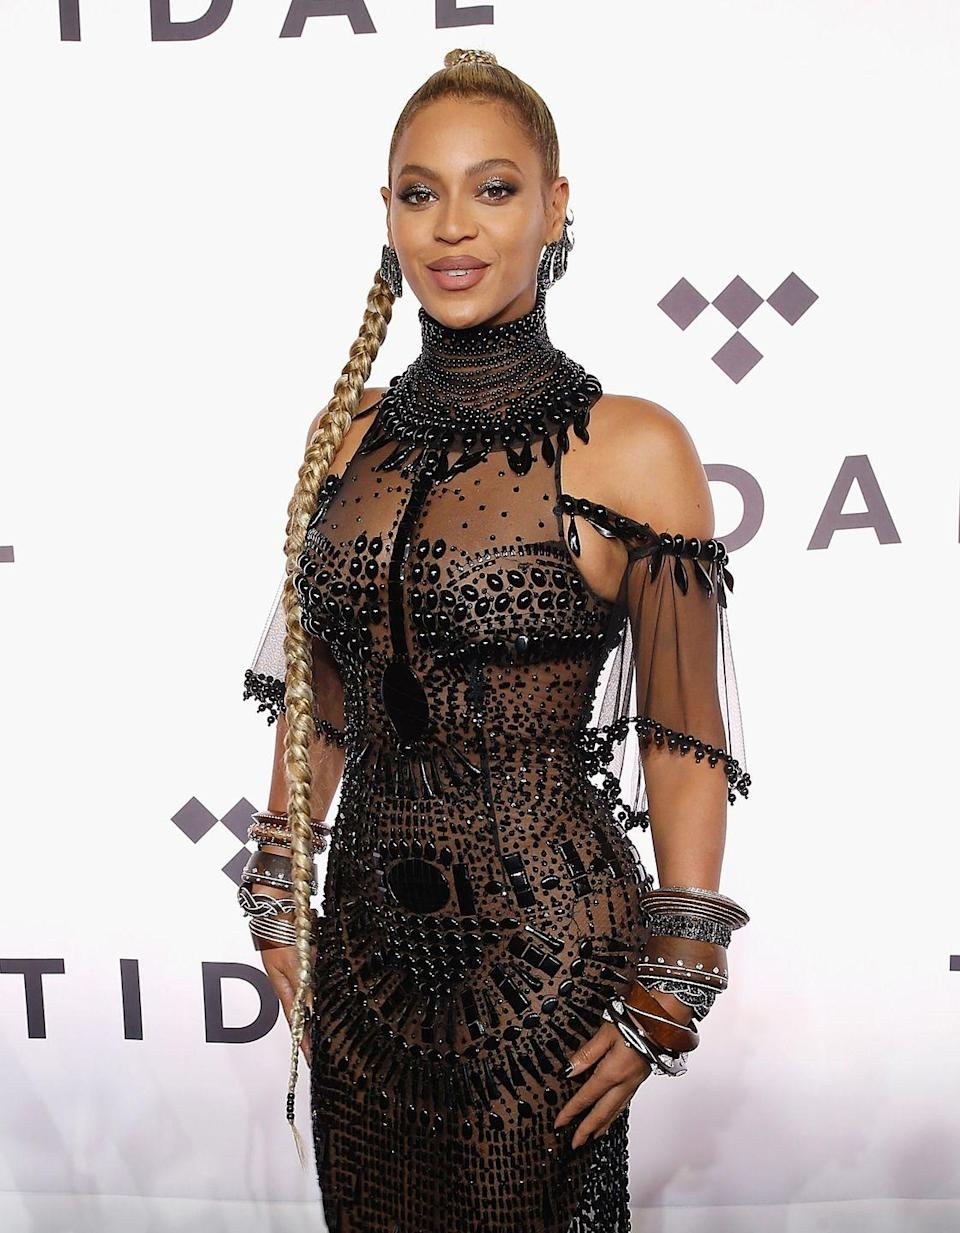 <p>Beyoncé's first movie was an <em>Austin Powers </em>joint. Many have wondered if she regrets doing the movie, but at least her costumes were great!</p>